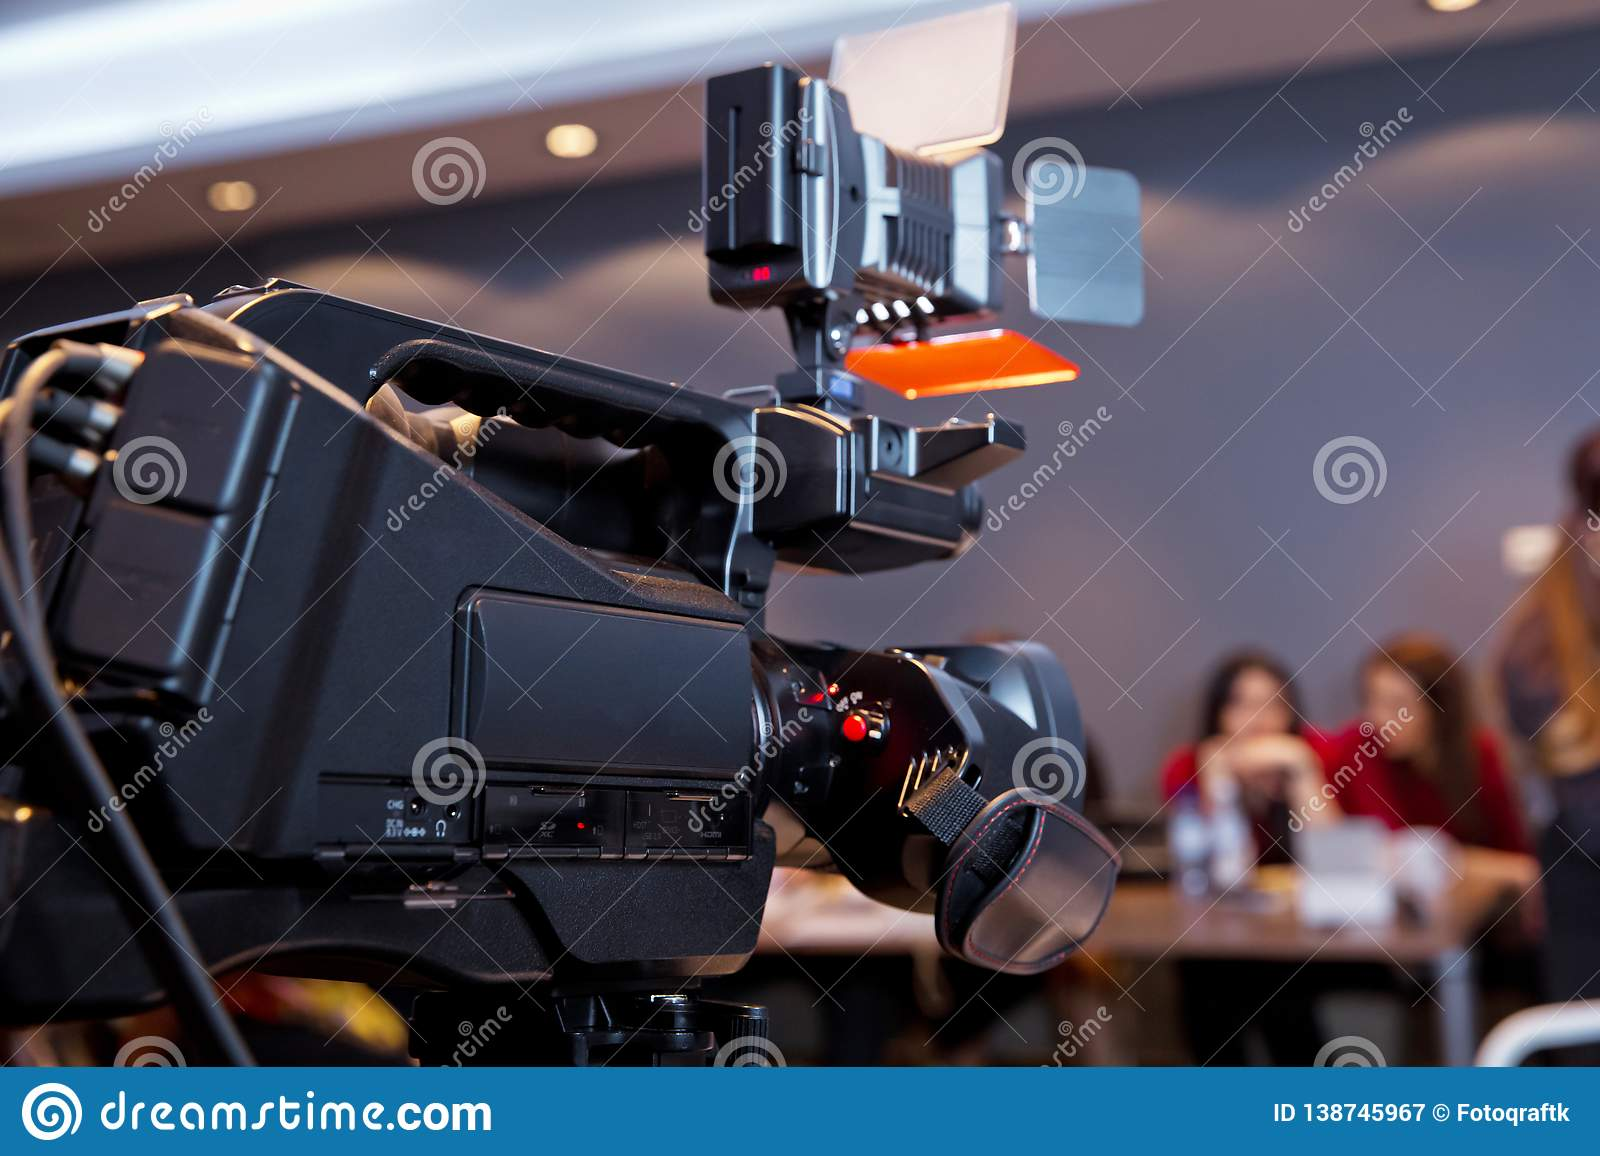 In front of the camera to recording vlog video live streaming at home.Business online influencer on social media concept